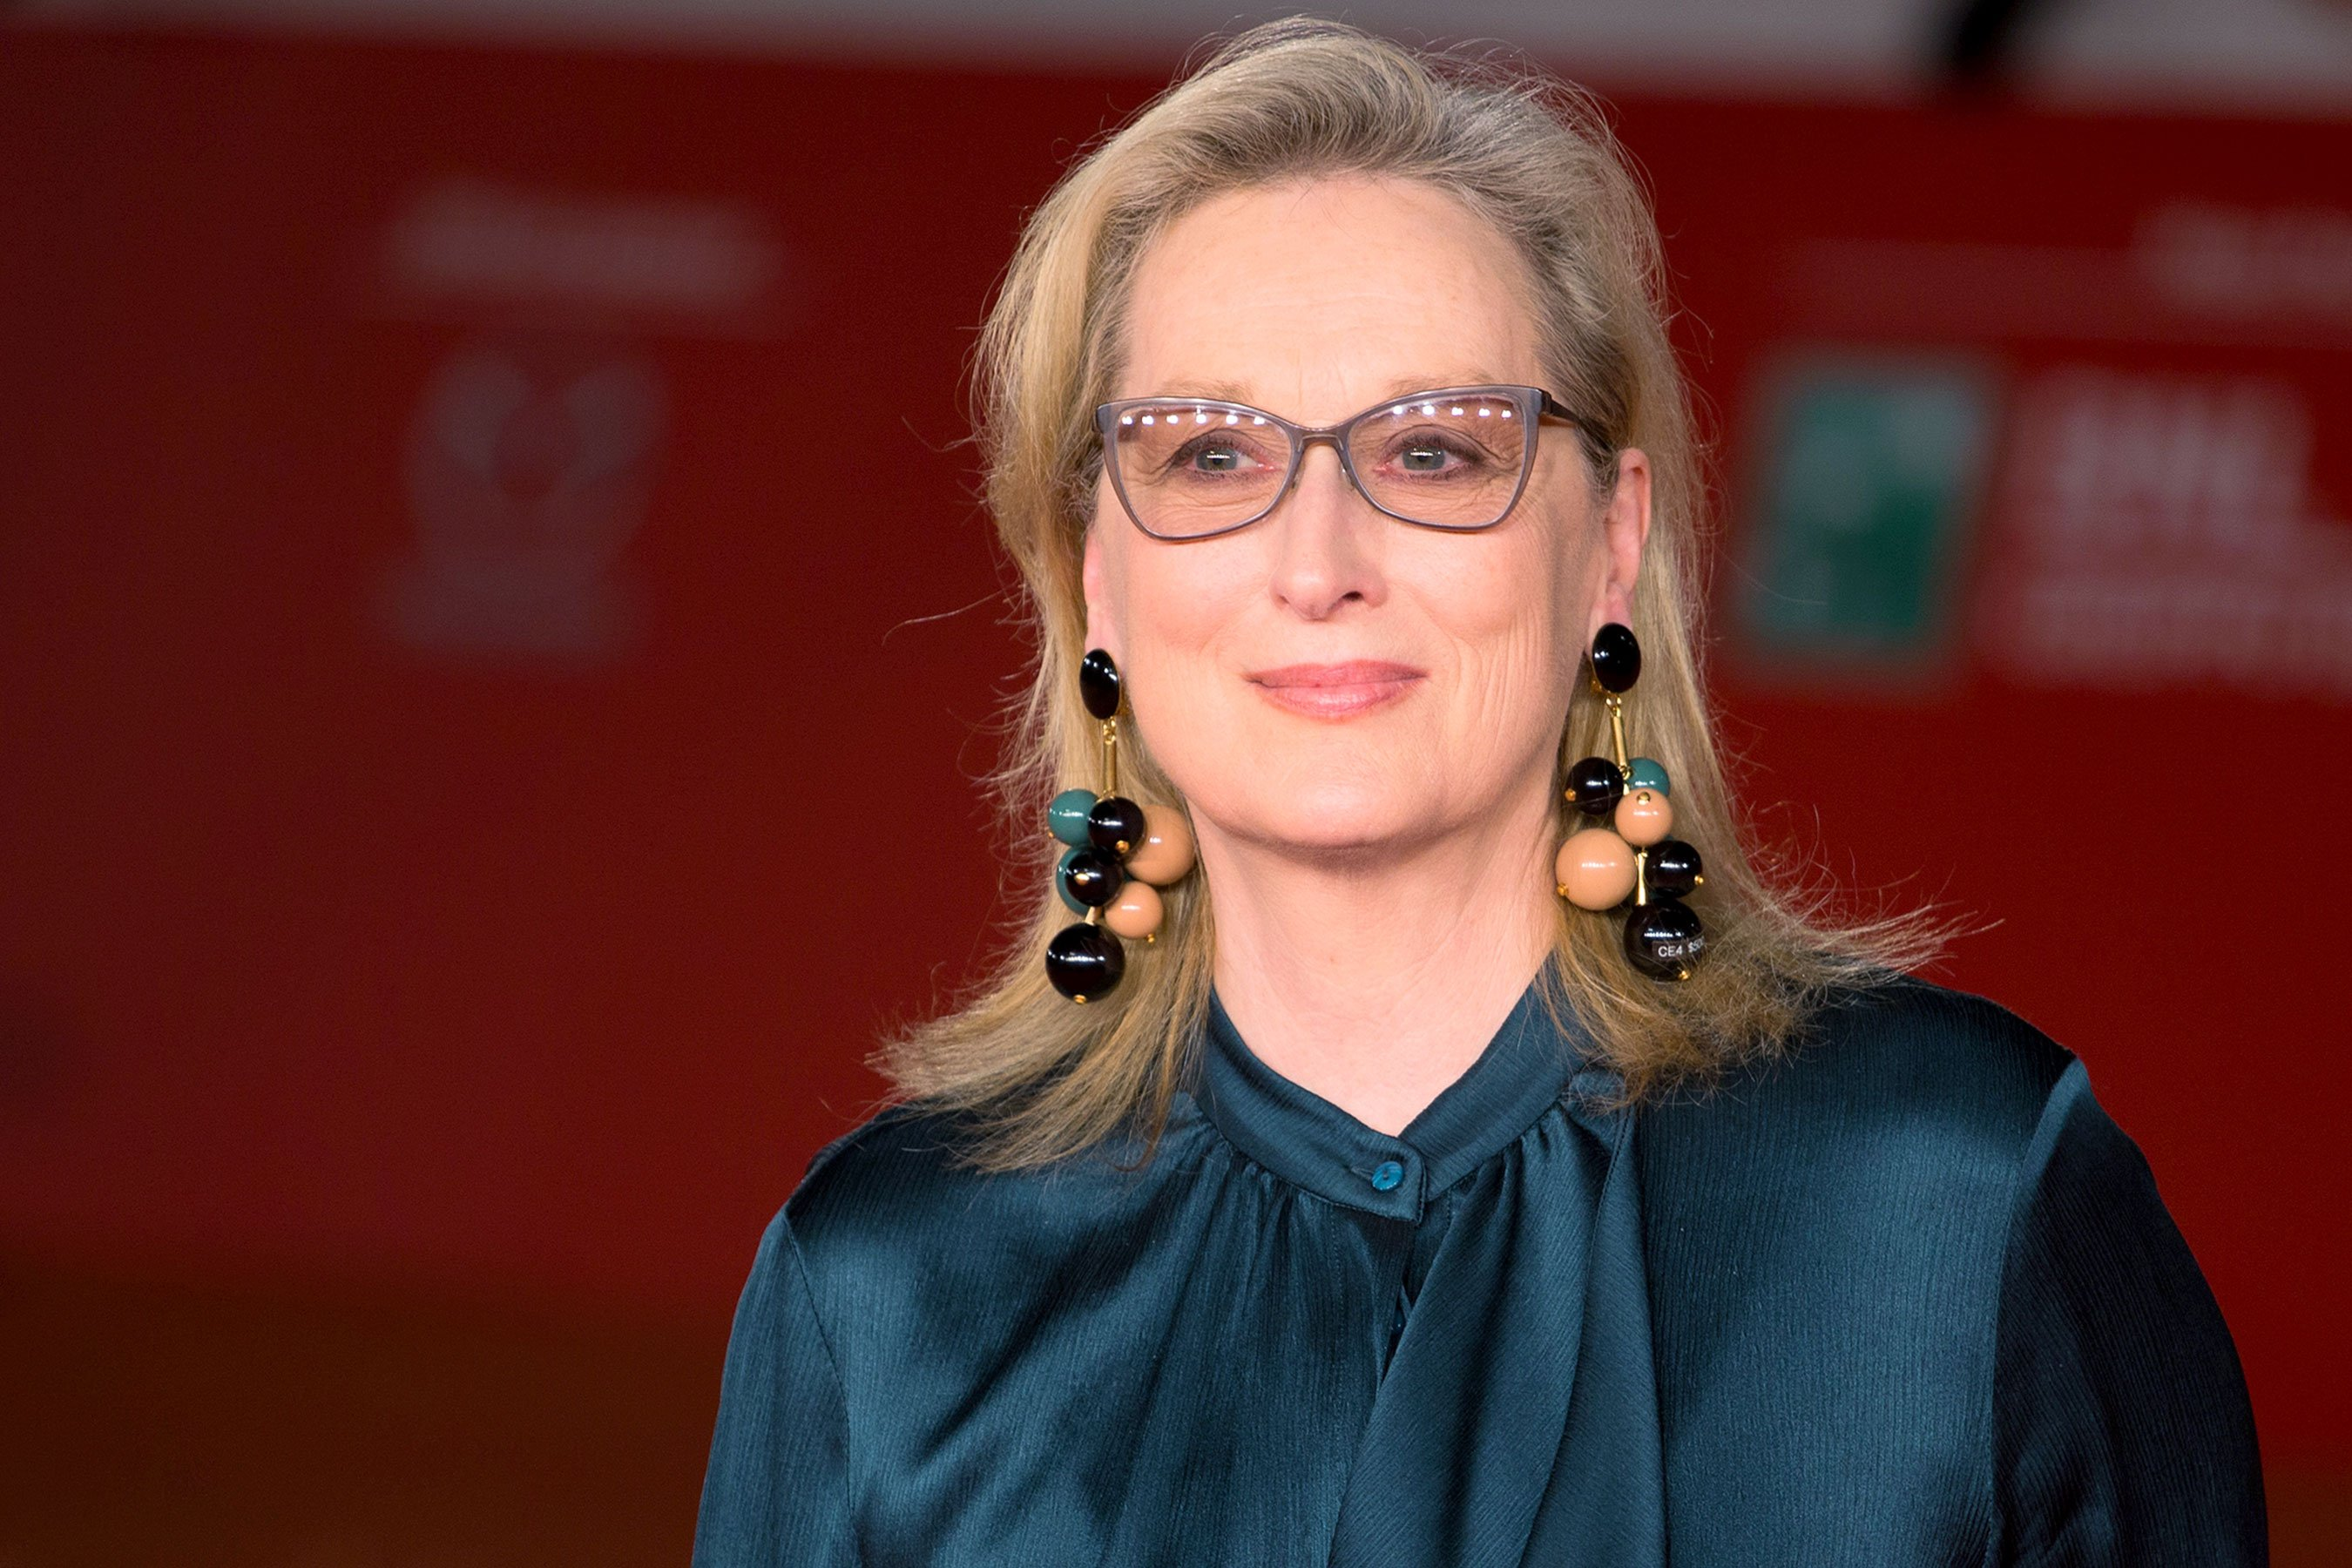 Meryl Streep on sexual misconduct: 'I don't want to hear about the silence of me'